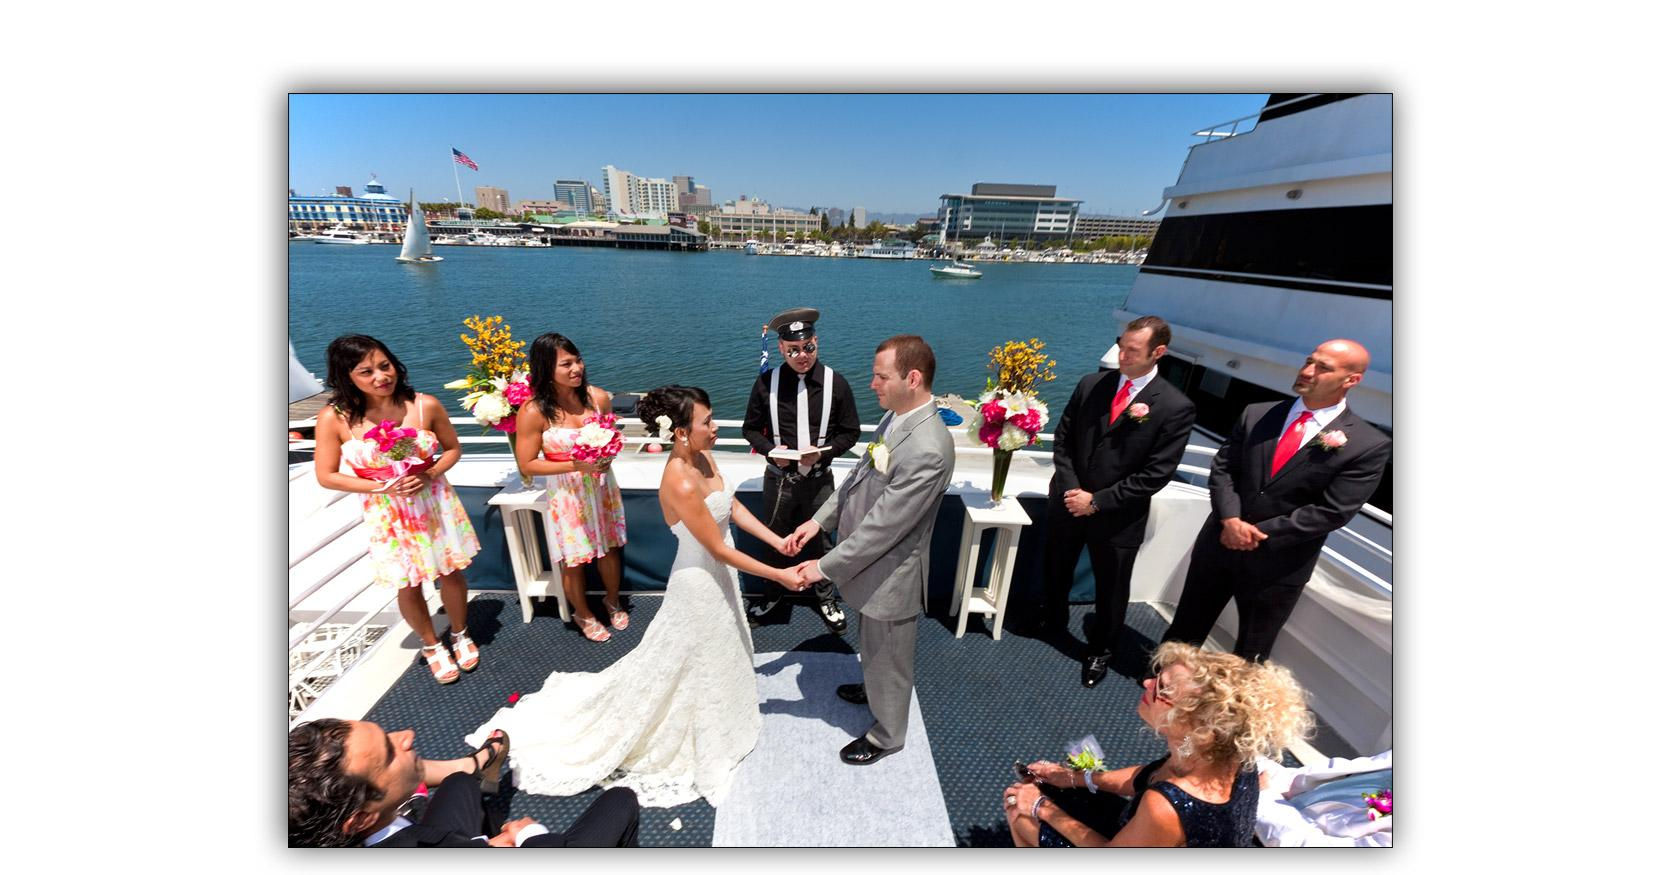 San Francisco Bay yacht boat wedding cruise Commodore Events Merlot photography album 06